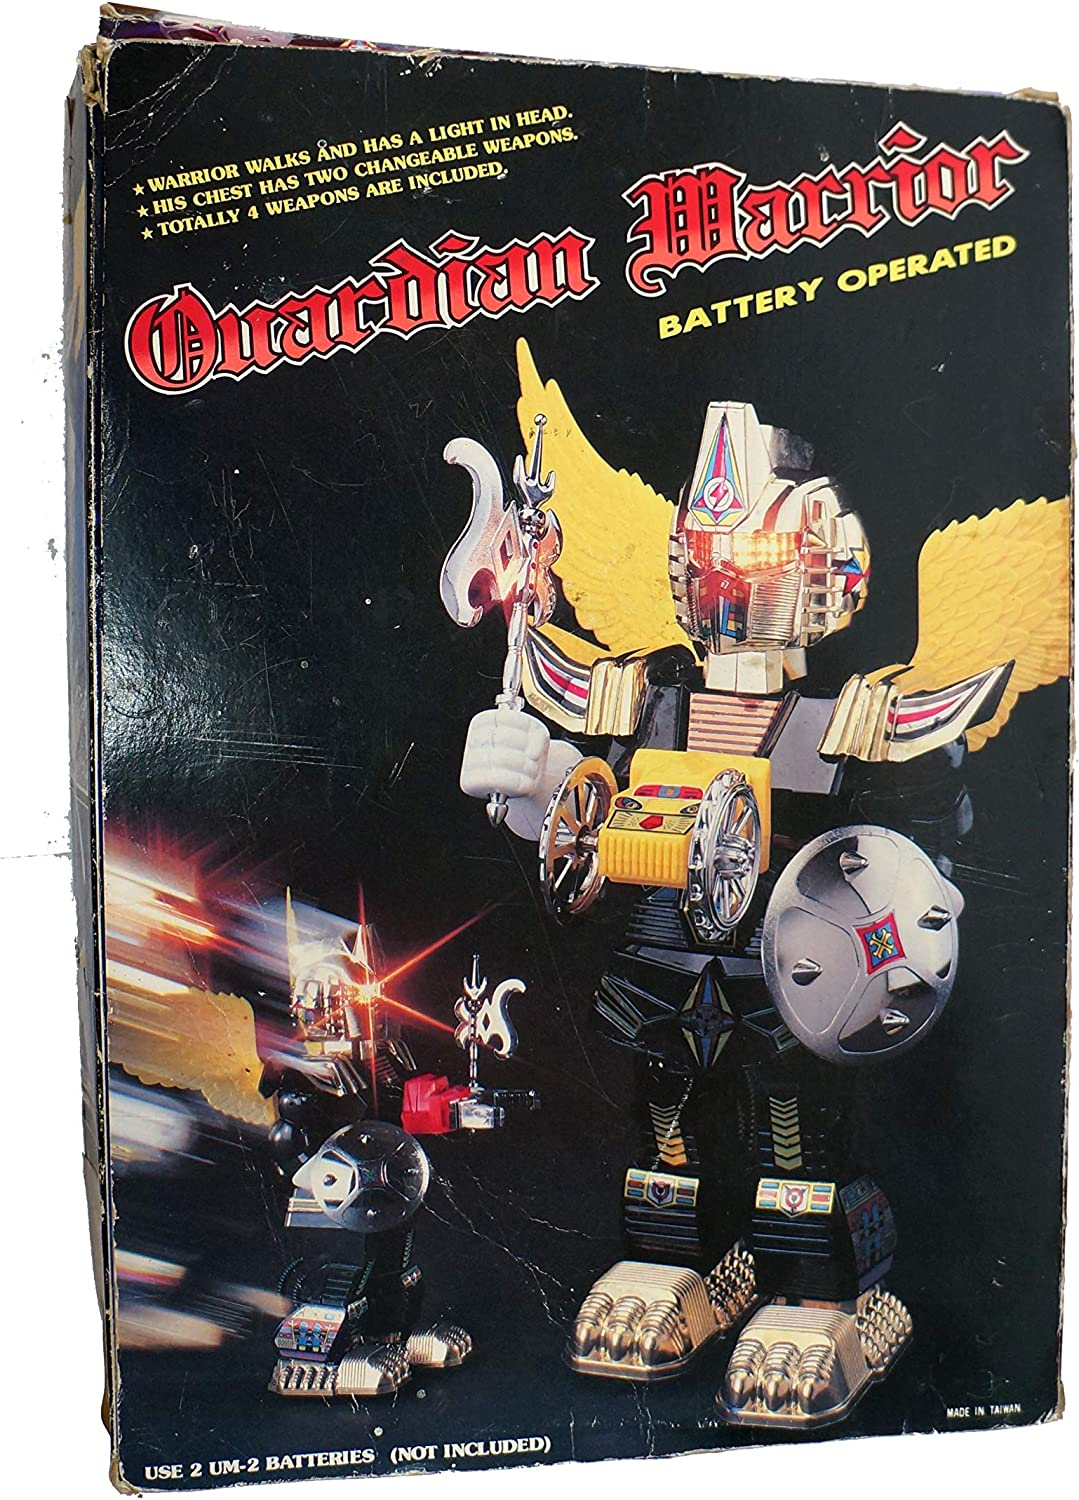 Guardian Warrior Vintage 1986 Son Ai Toys Battery Operated Electronic 12 Inch Robot  Fully Working In The Original Box